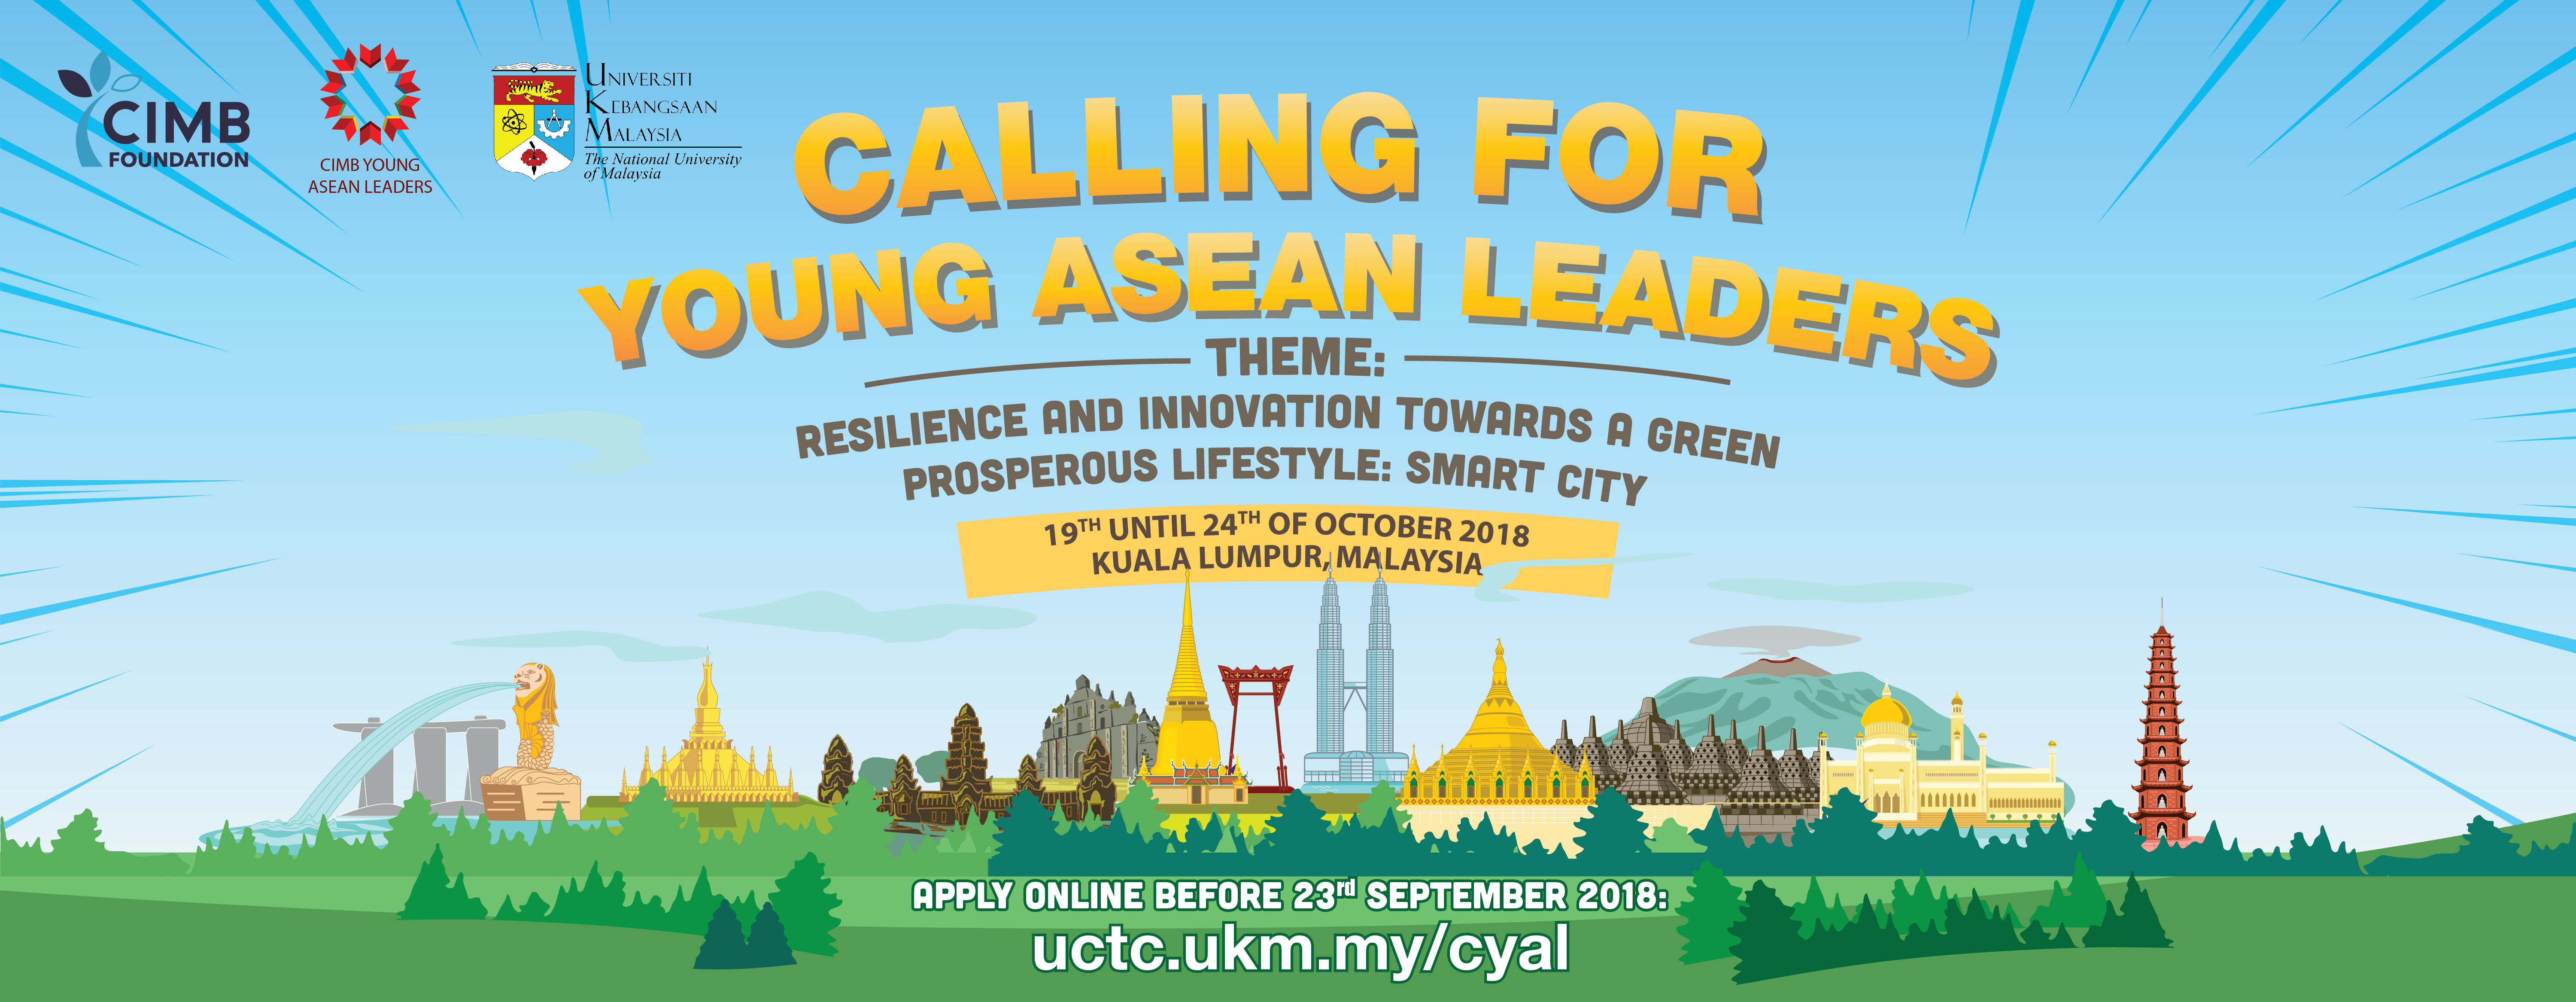 Calling for Young ASEAN Leaders 2018